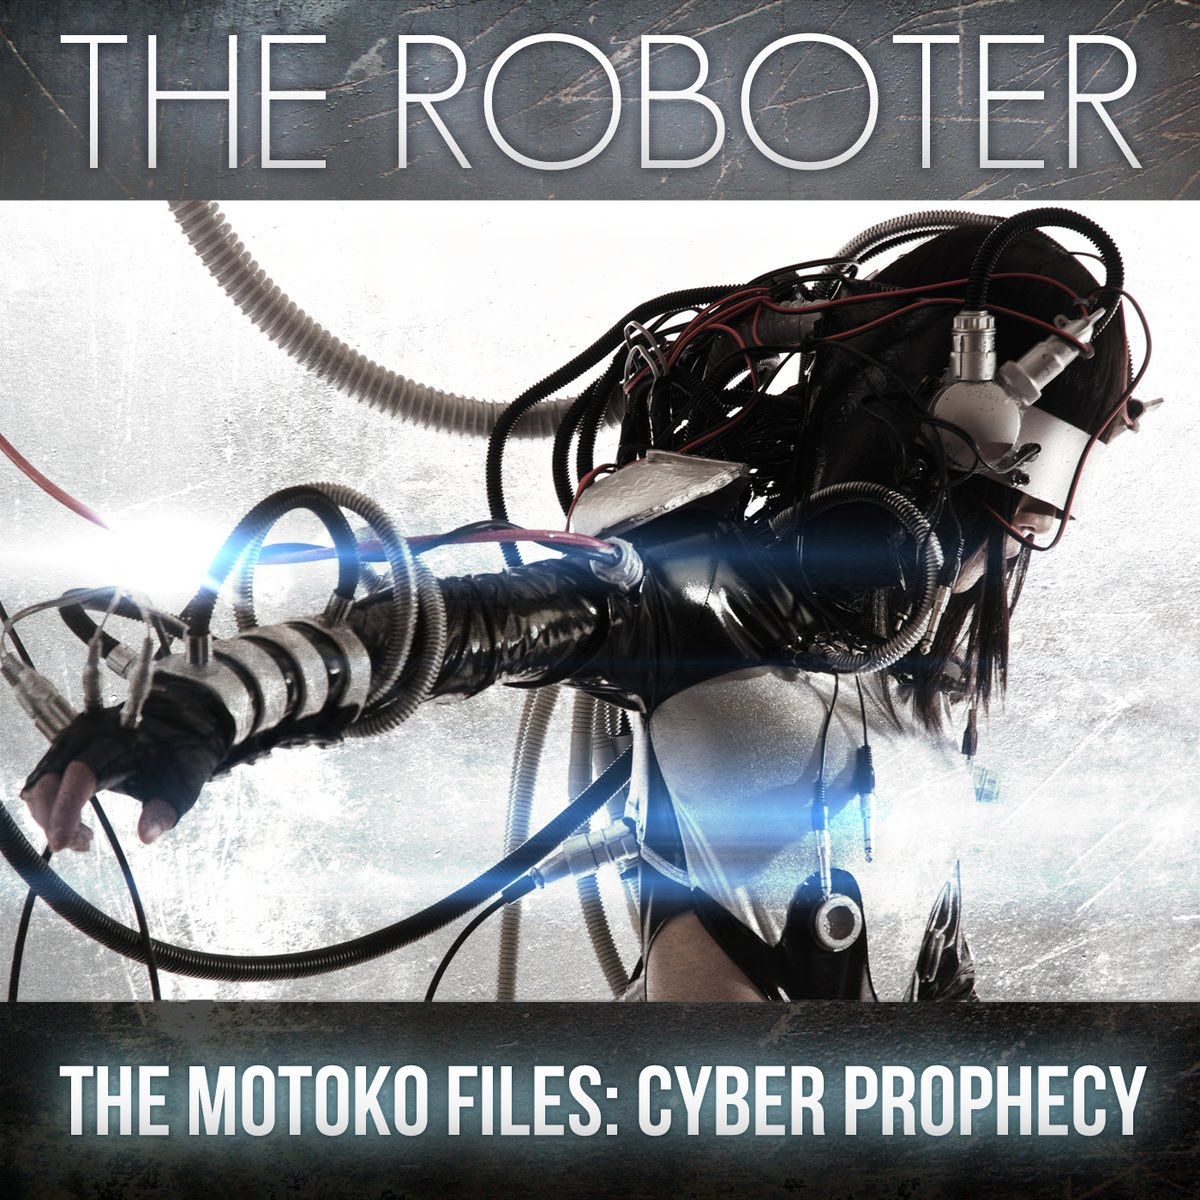 https://theroboter.bandcamp.com/album/the-motoko-files-cyber-prophecy